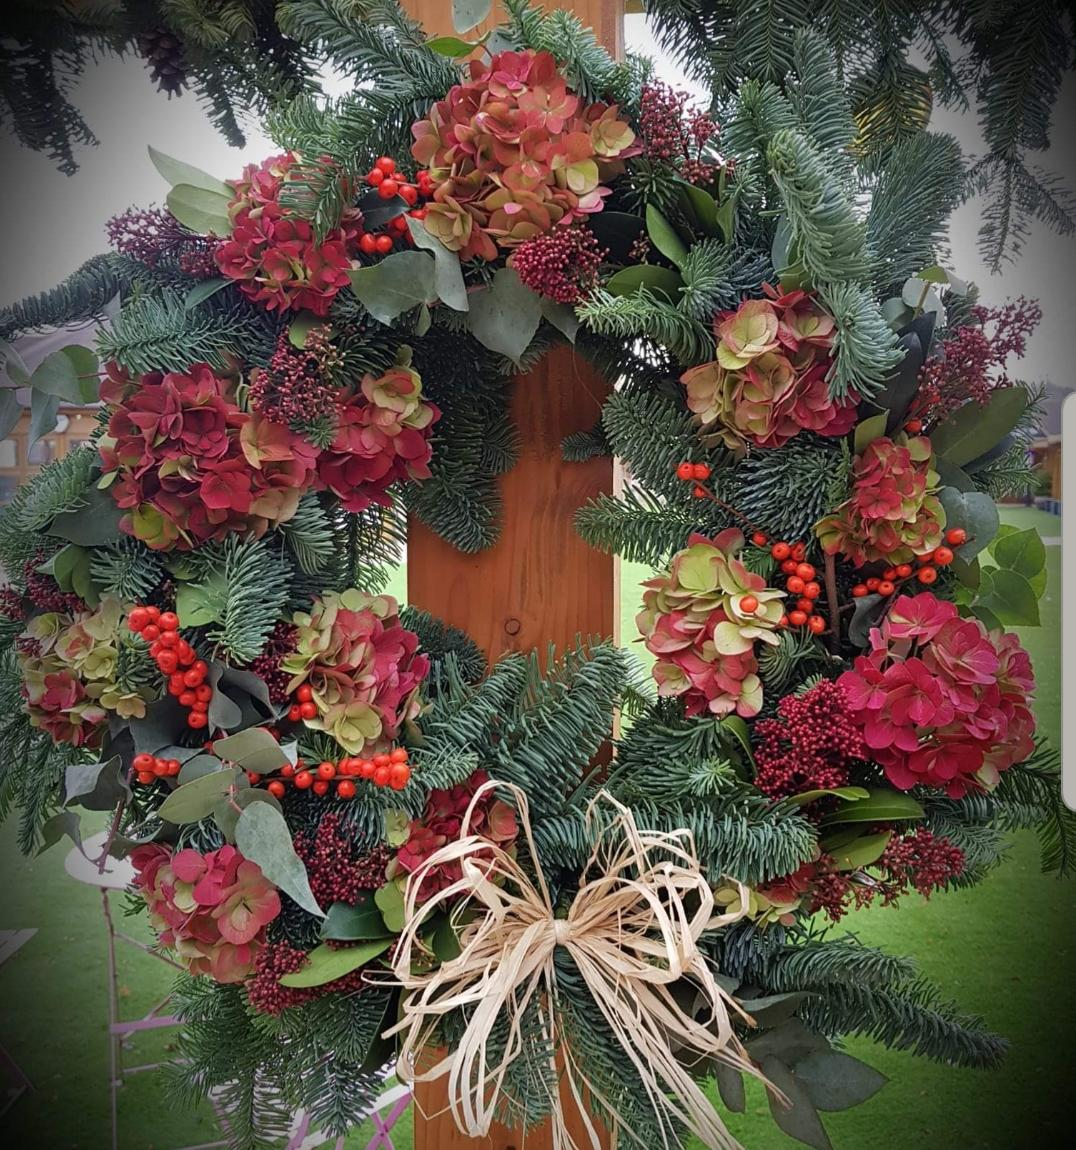 Wreath Making Workshop with Cottage Garden Florist- 1st December 2019